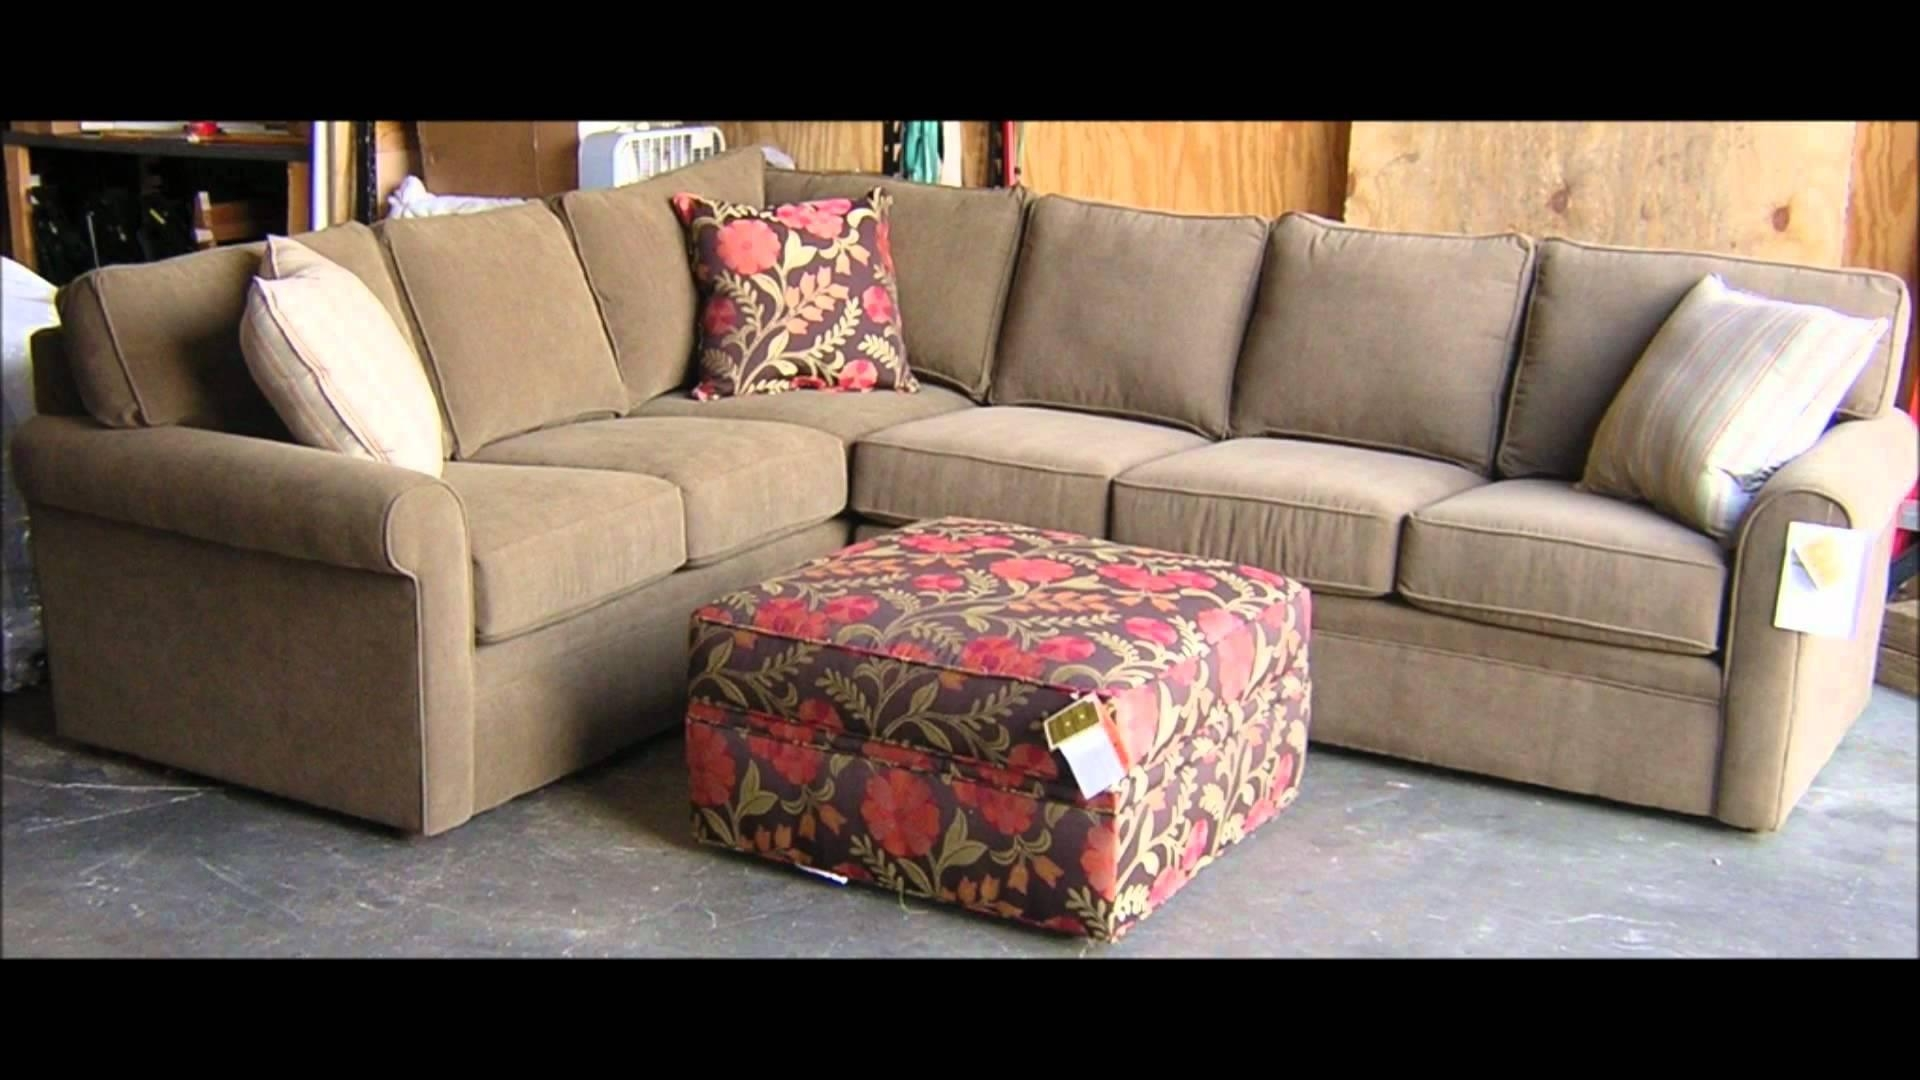 Decorating: Exciting White Rowe Furniture Slipcovers With With Rowe Slipcovers (Image 4 of 20)